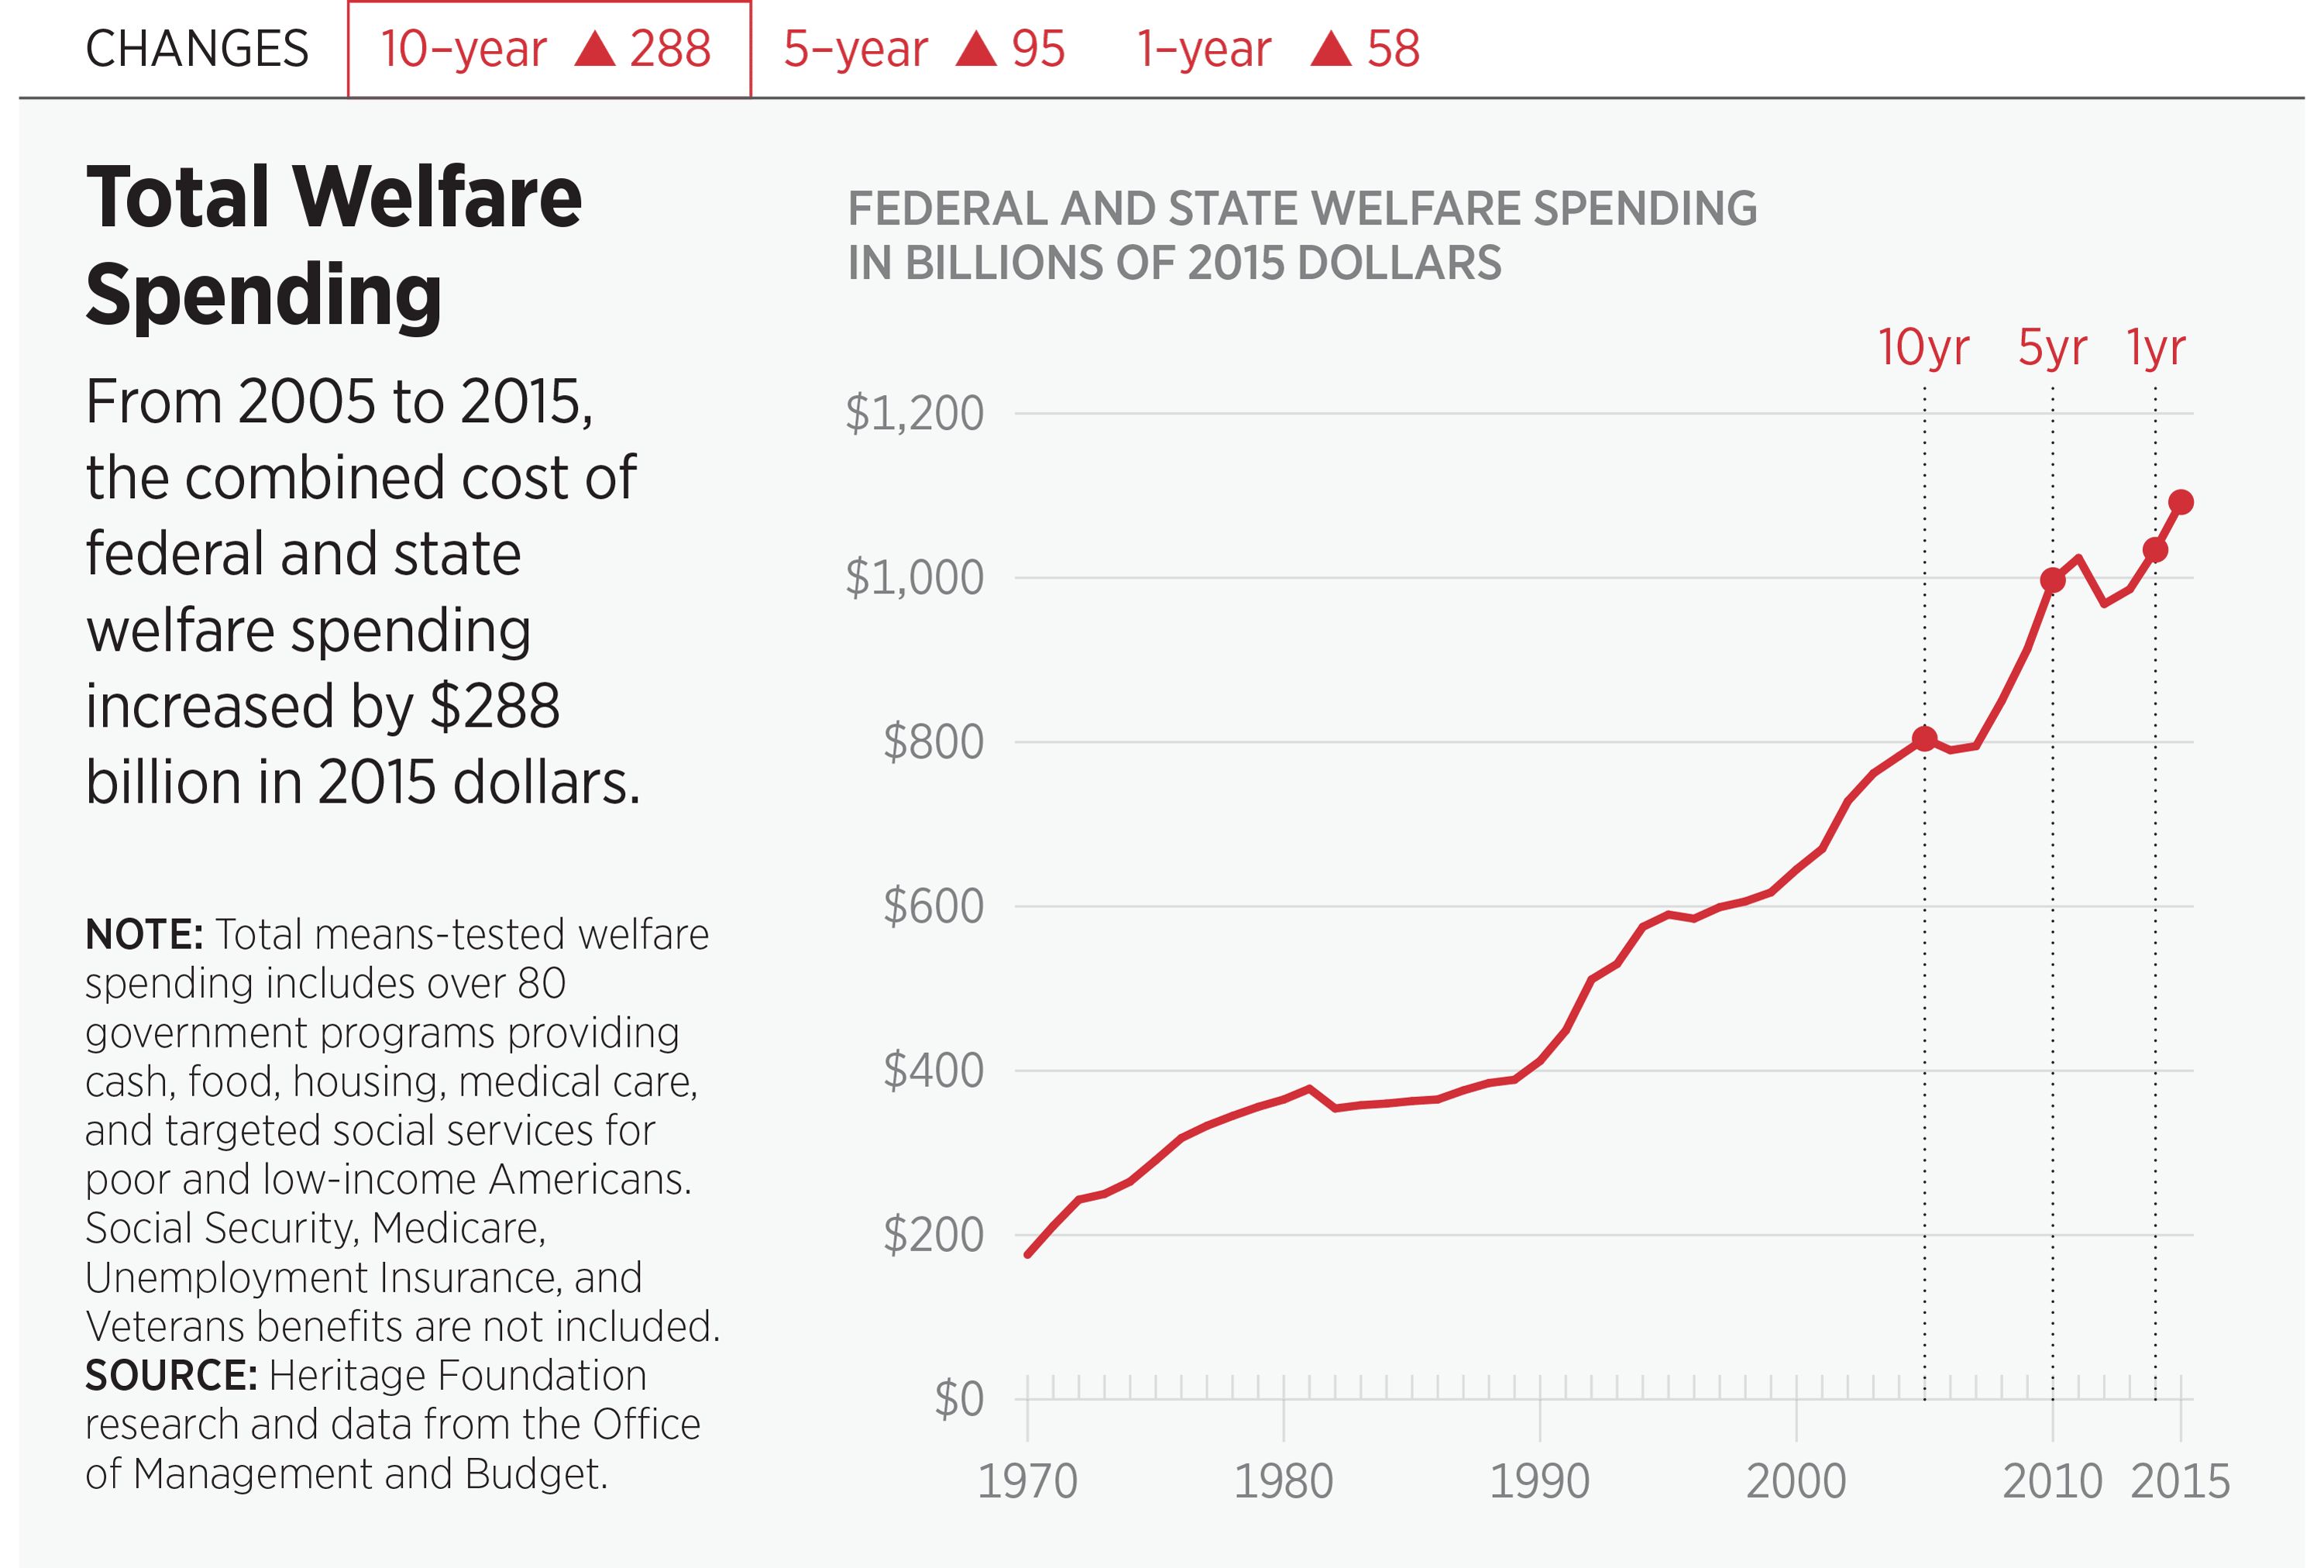 Total Welfare Spending